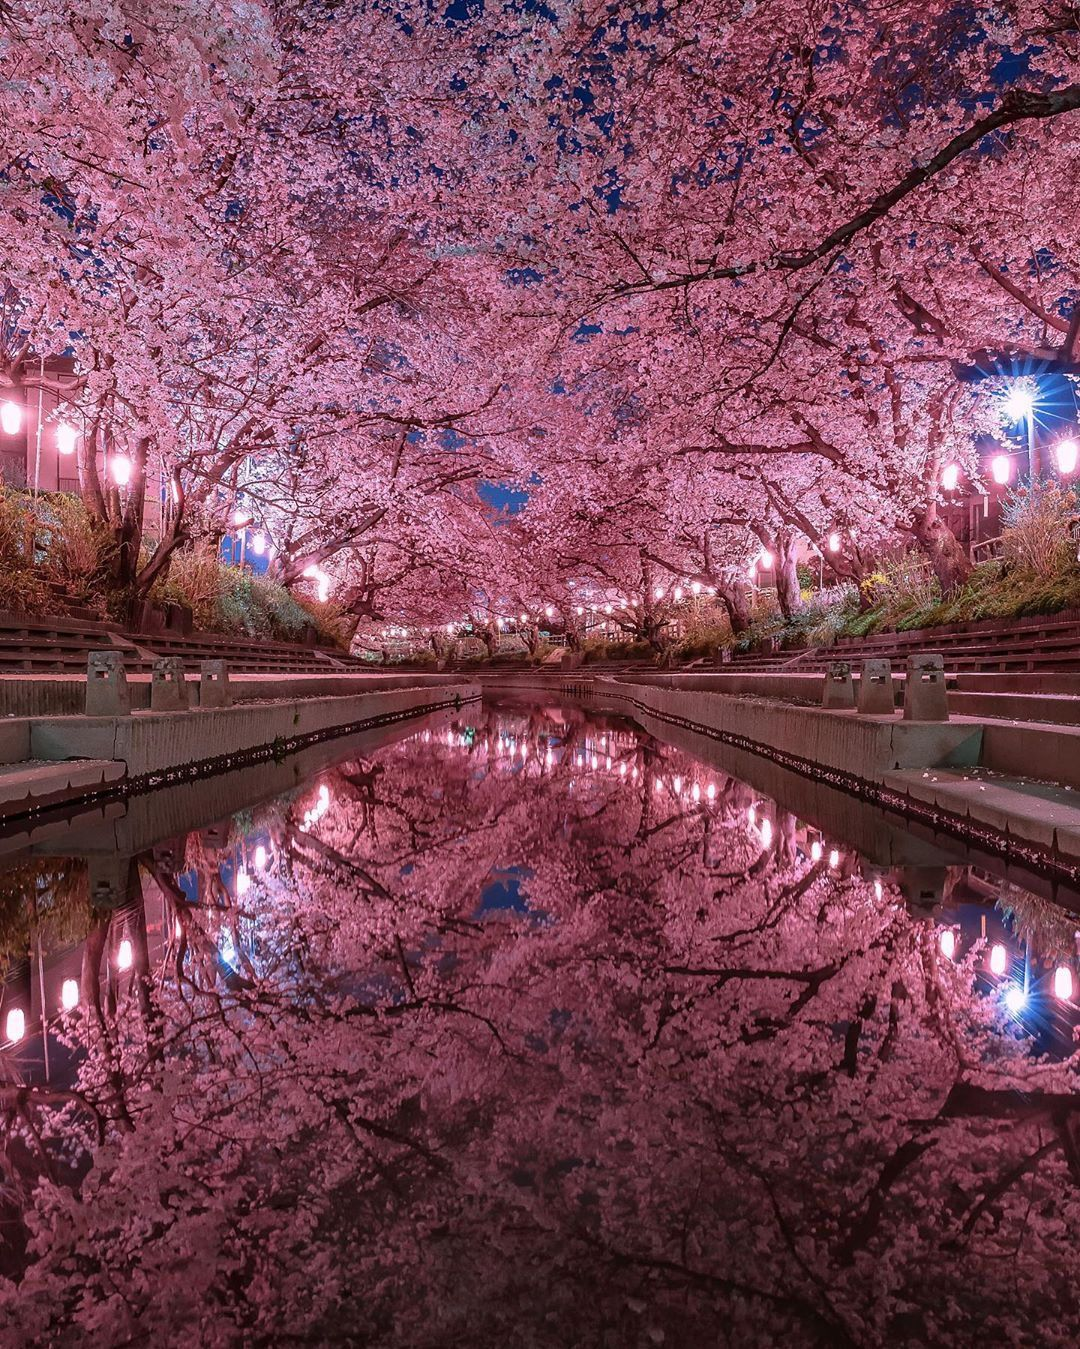 Japan On Twitter In 2021 Cherry Blossom Japan Japan Photography Nature Photography